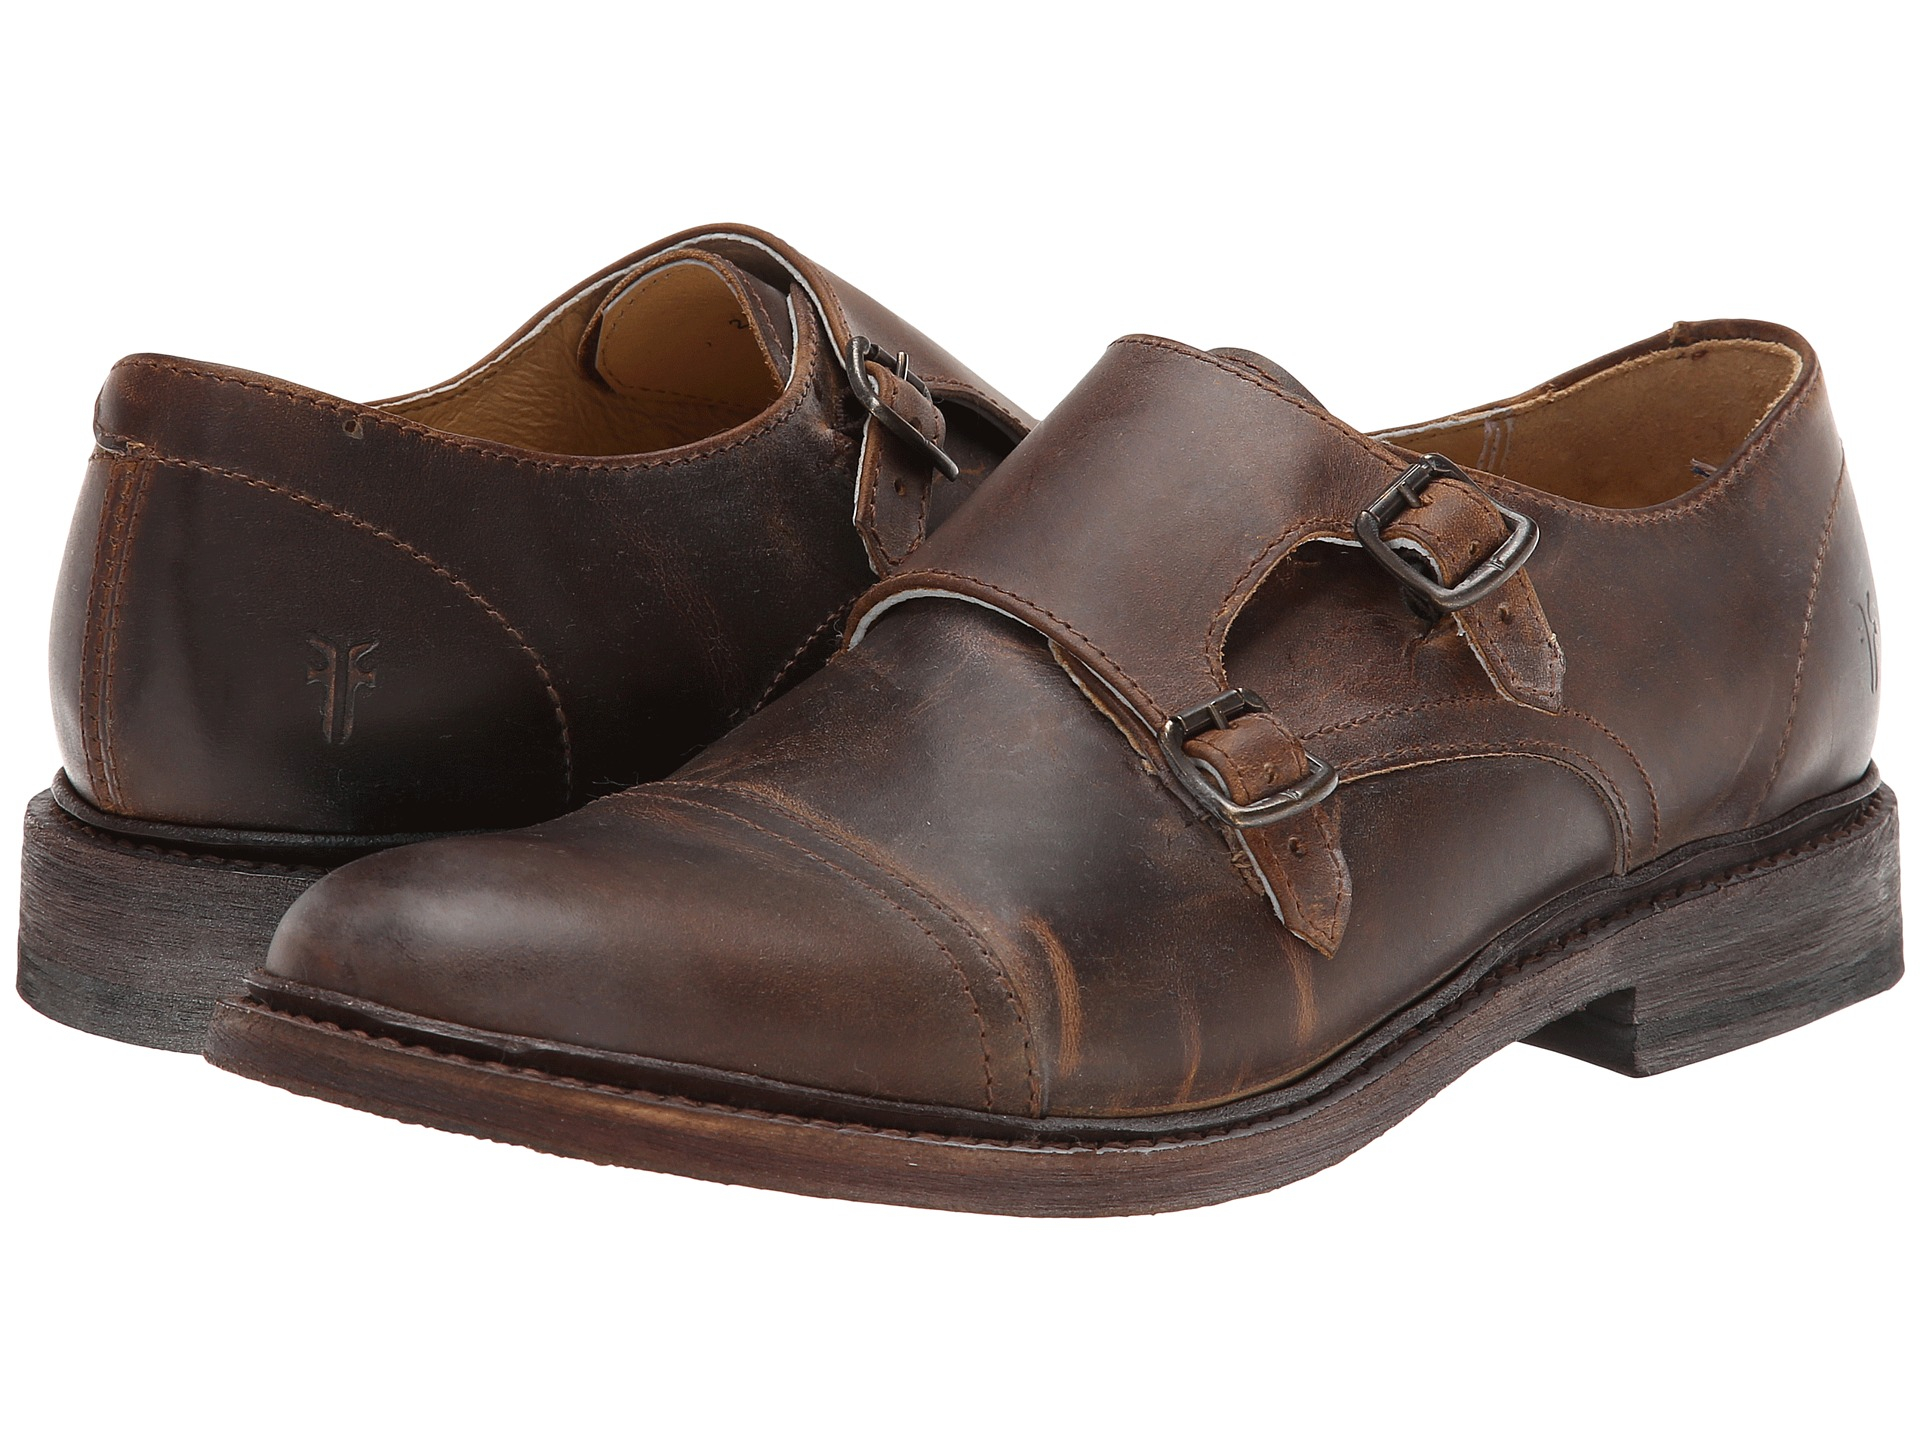 Leather Monk Shoes Women